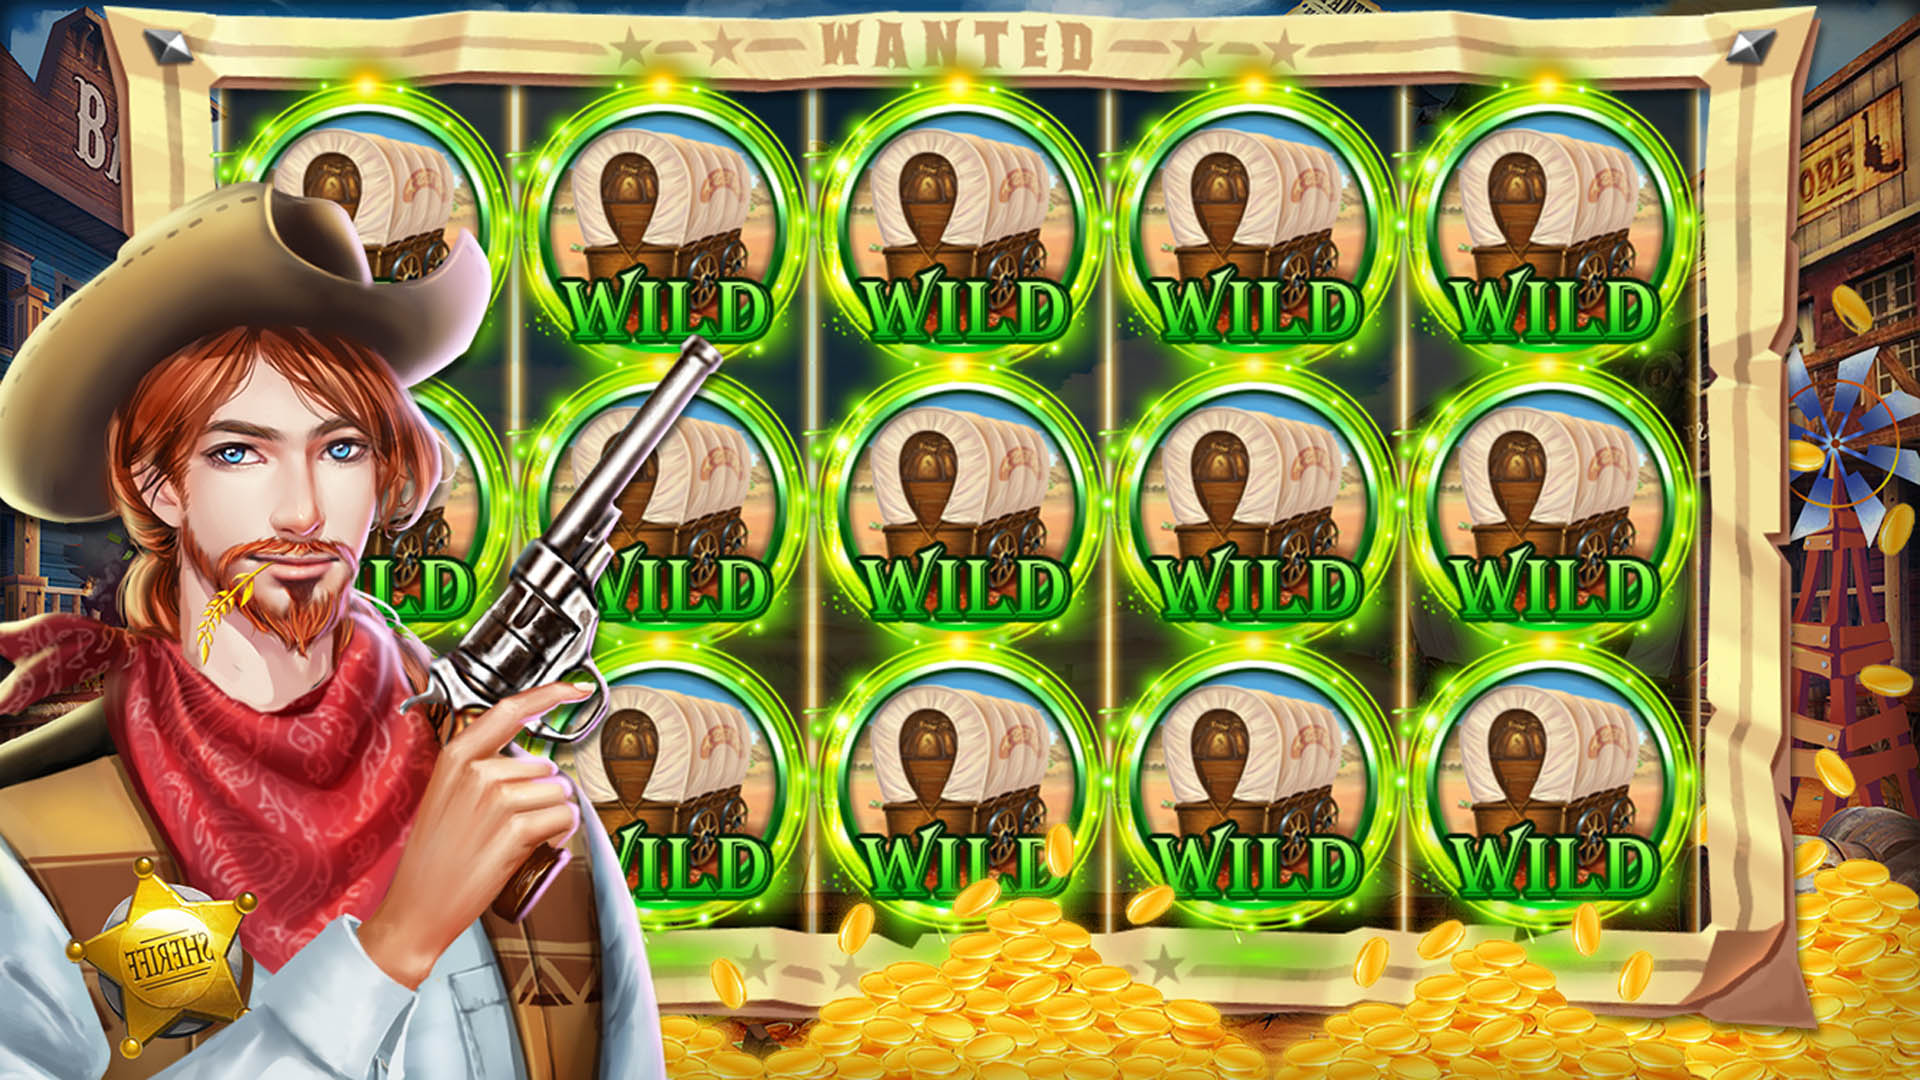 Amazon.com: Slots:Free Casino Slot Machine Games For Kindle Fire: Appstore for Android